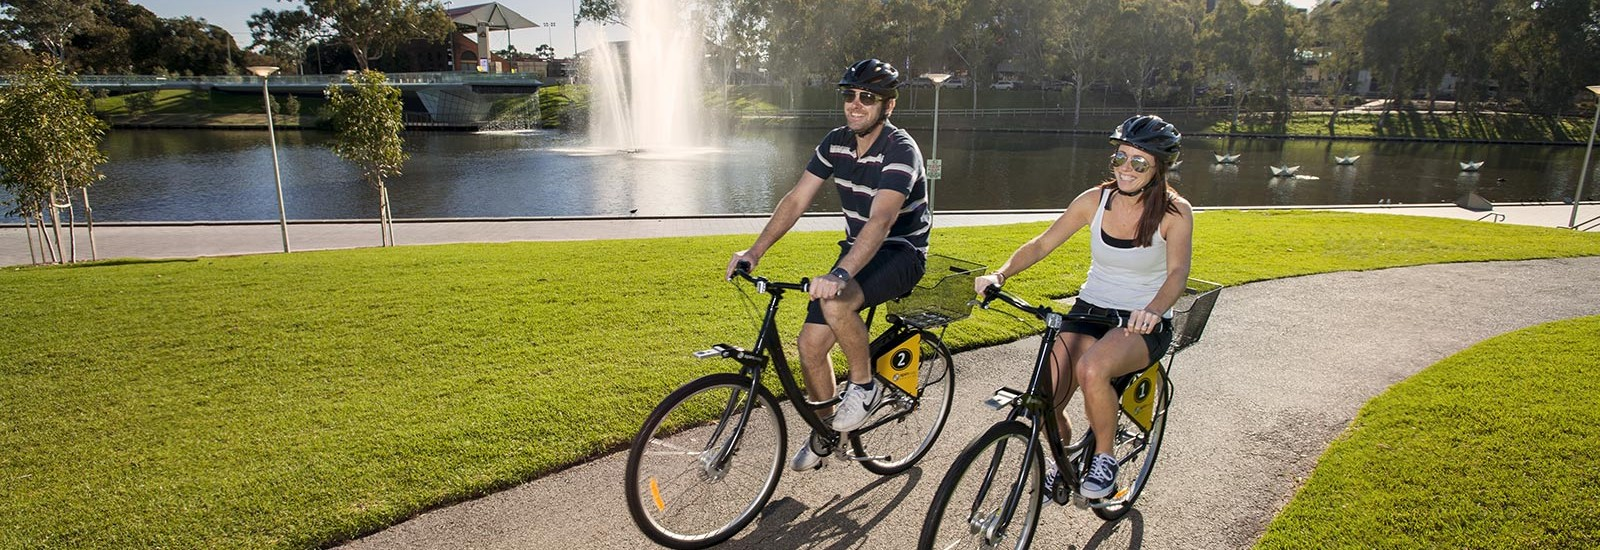 Home  Explore Adelaide » Spinway » Automated Bike Hire ...